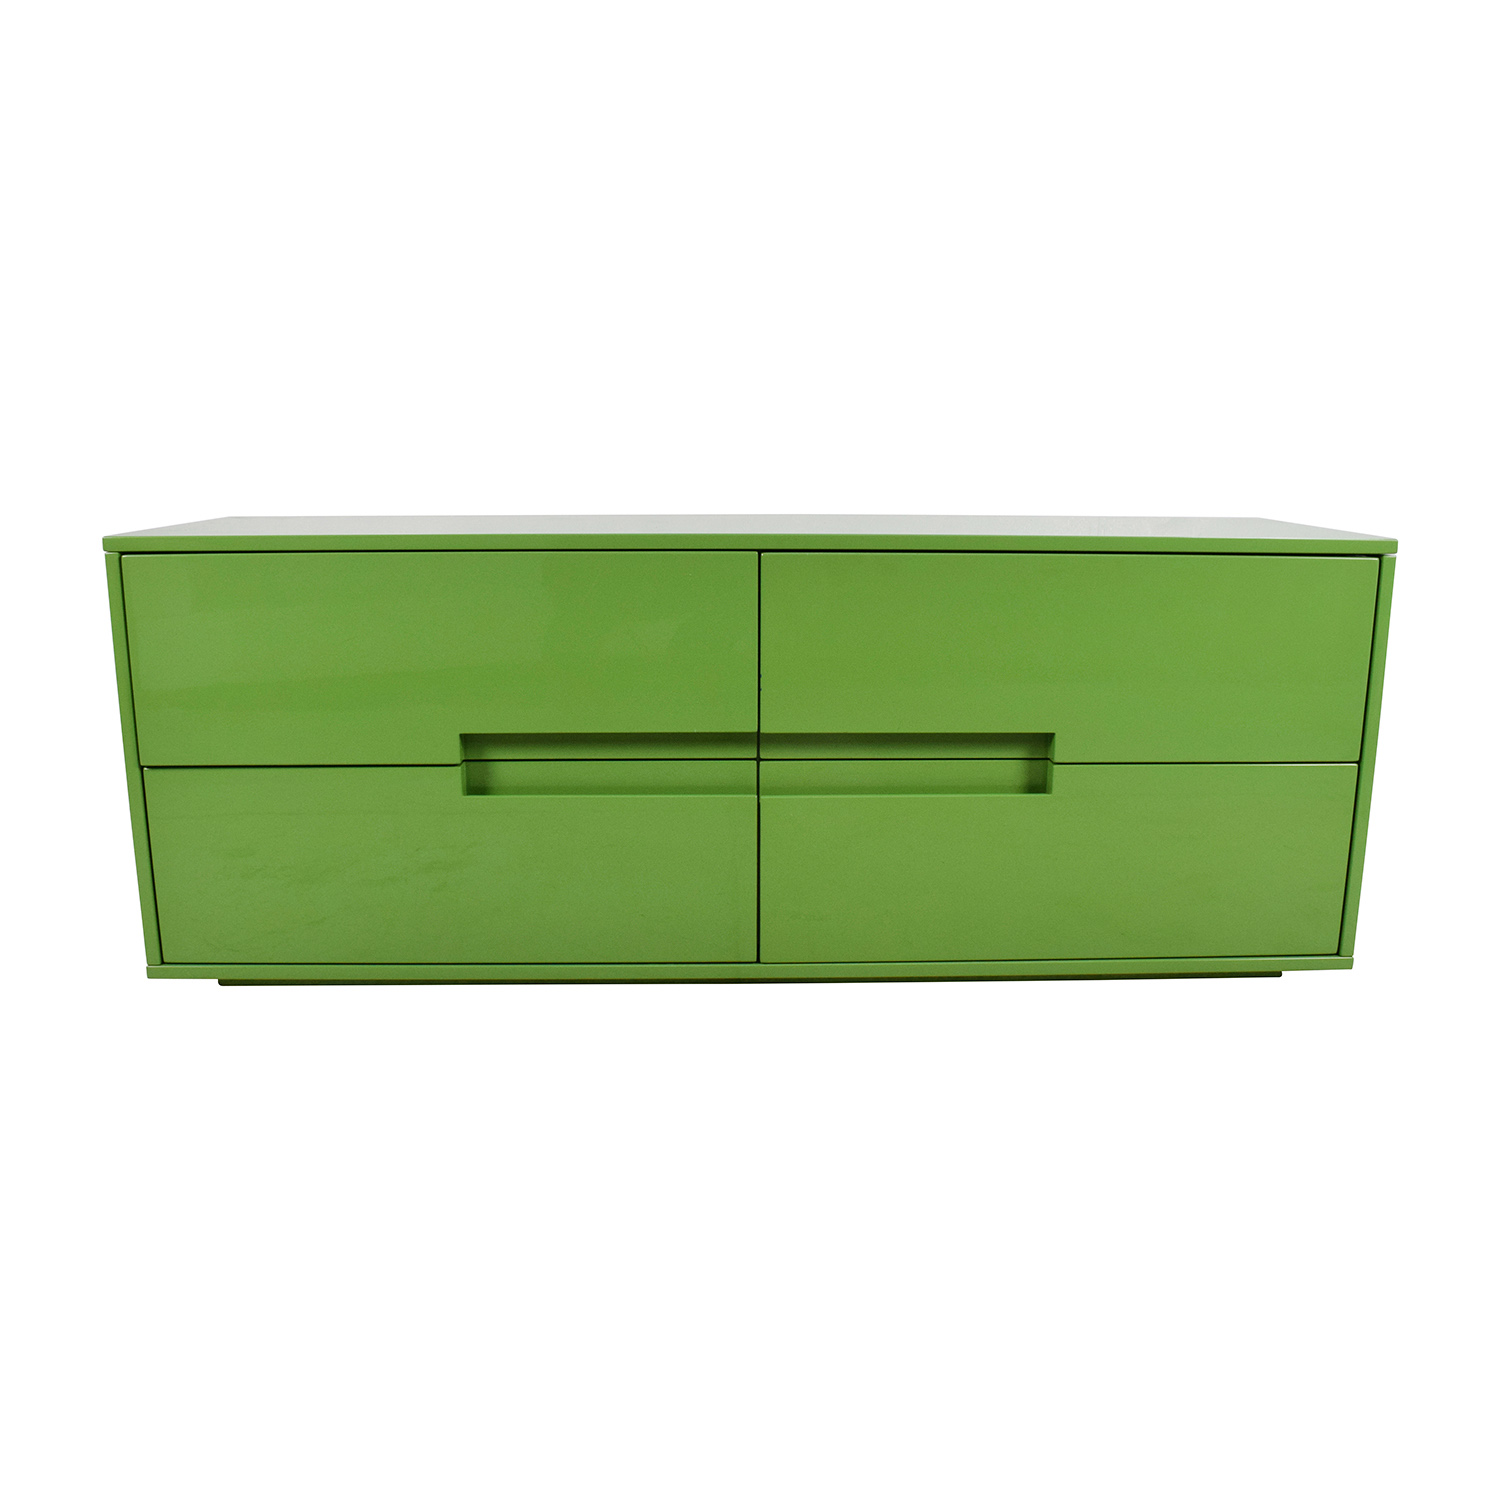 CB2 CB2 Latitude Low Dresser 4 Drawer